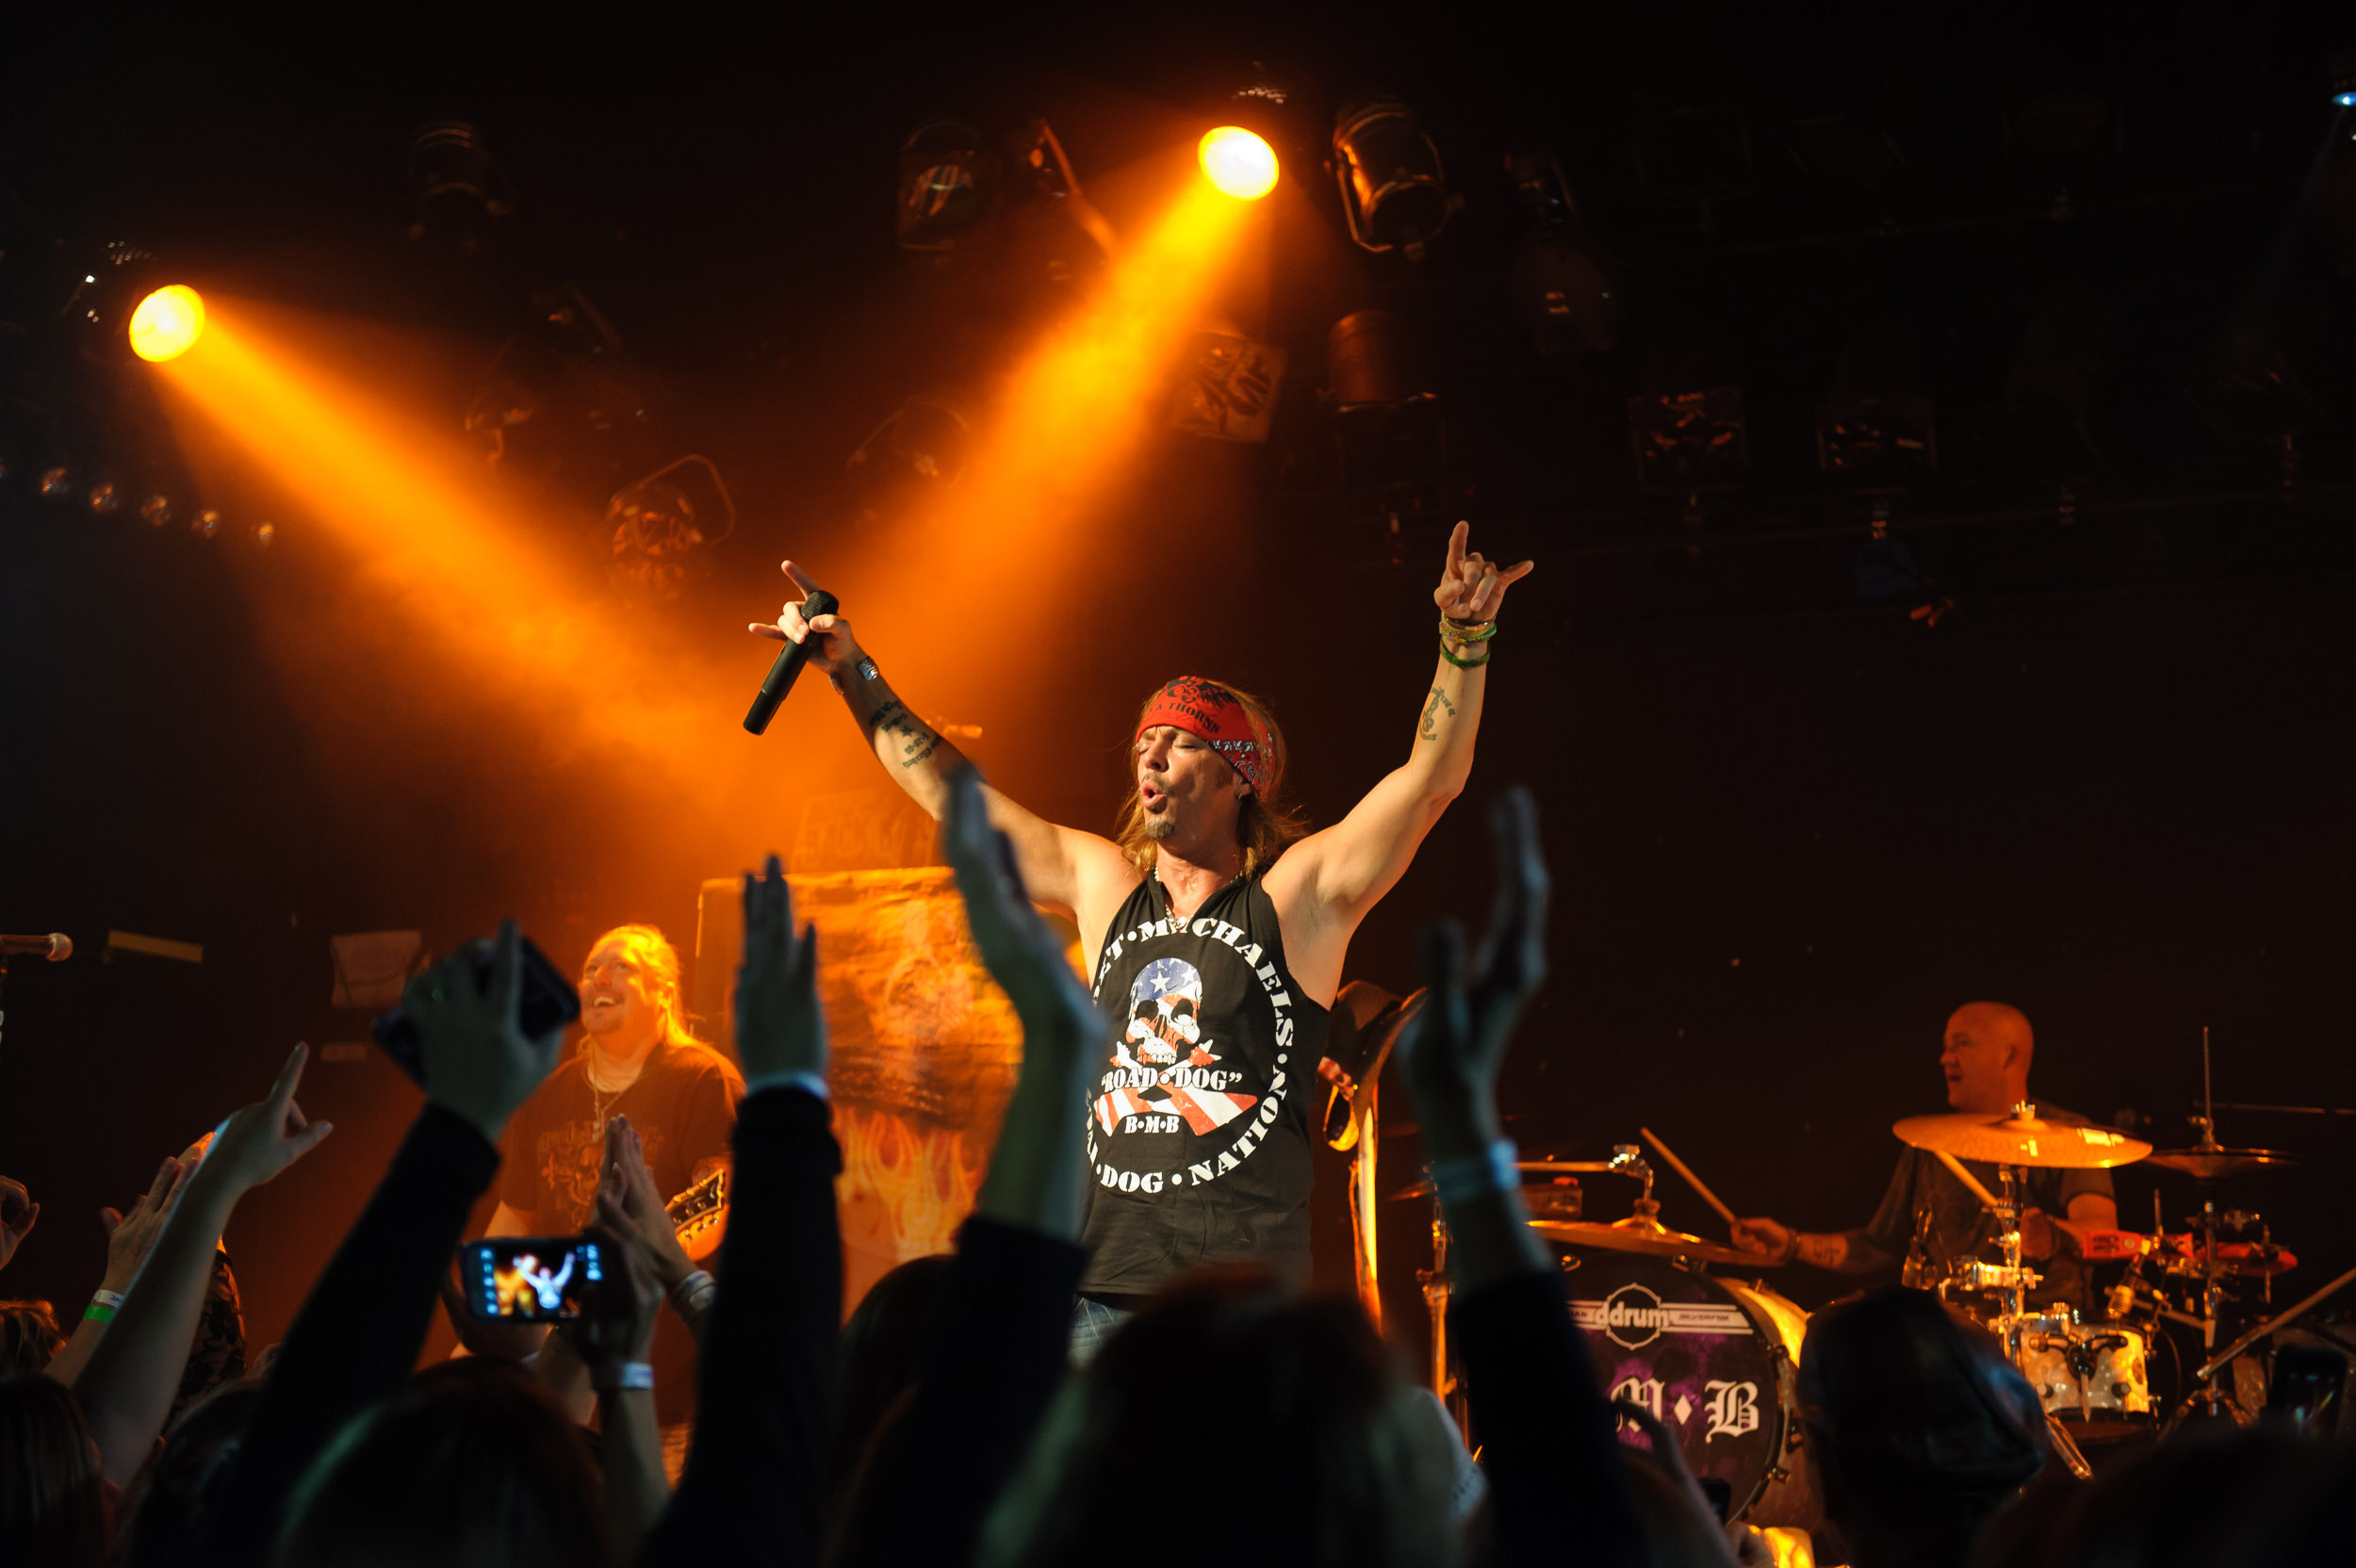 Bret Michaels live in concert | Rock concert | Photo by BillyBengtson.com